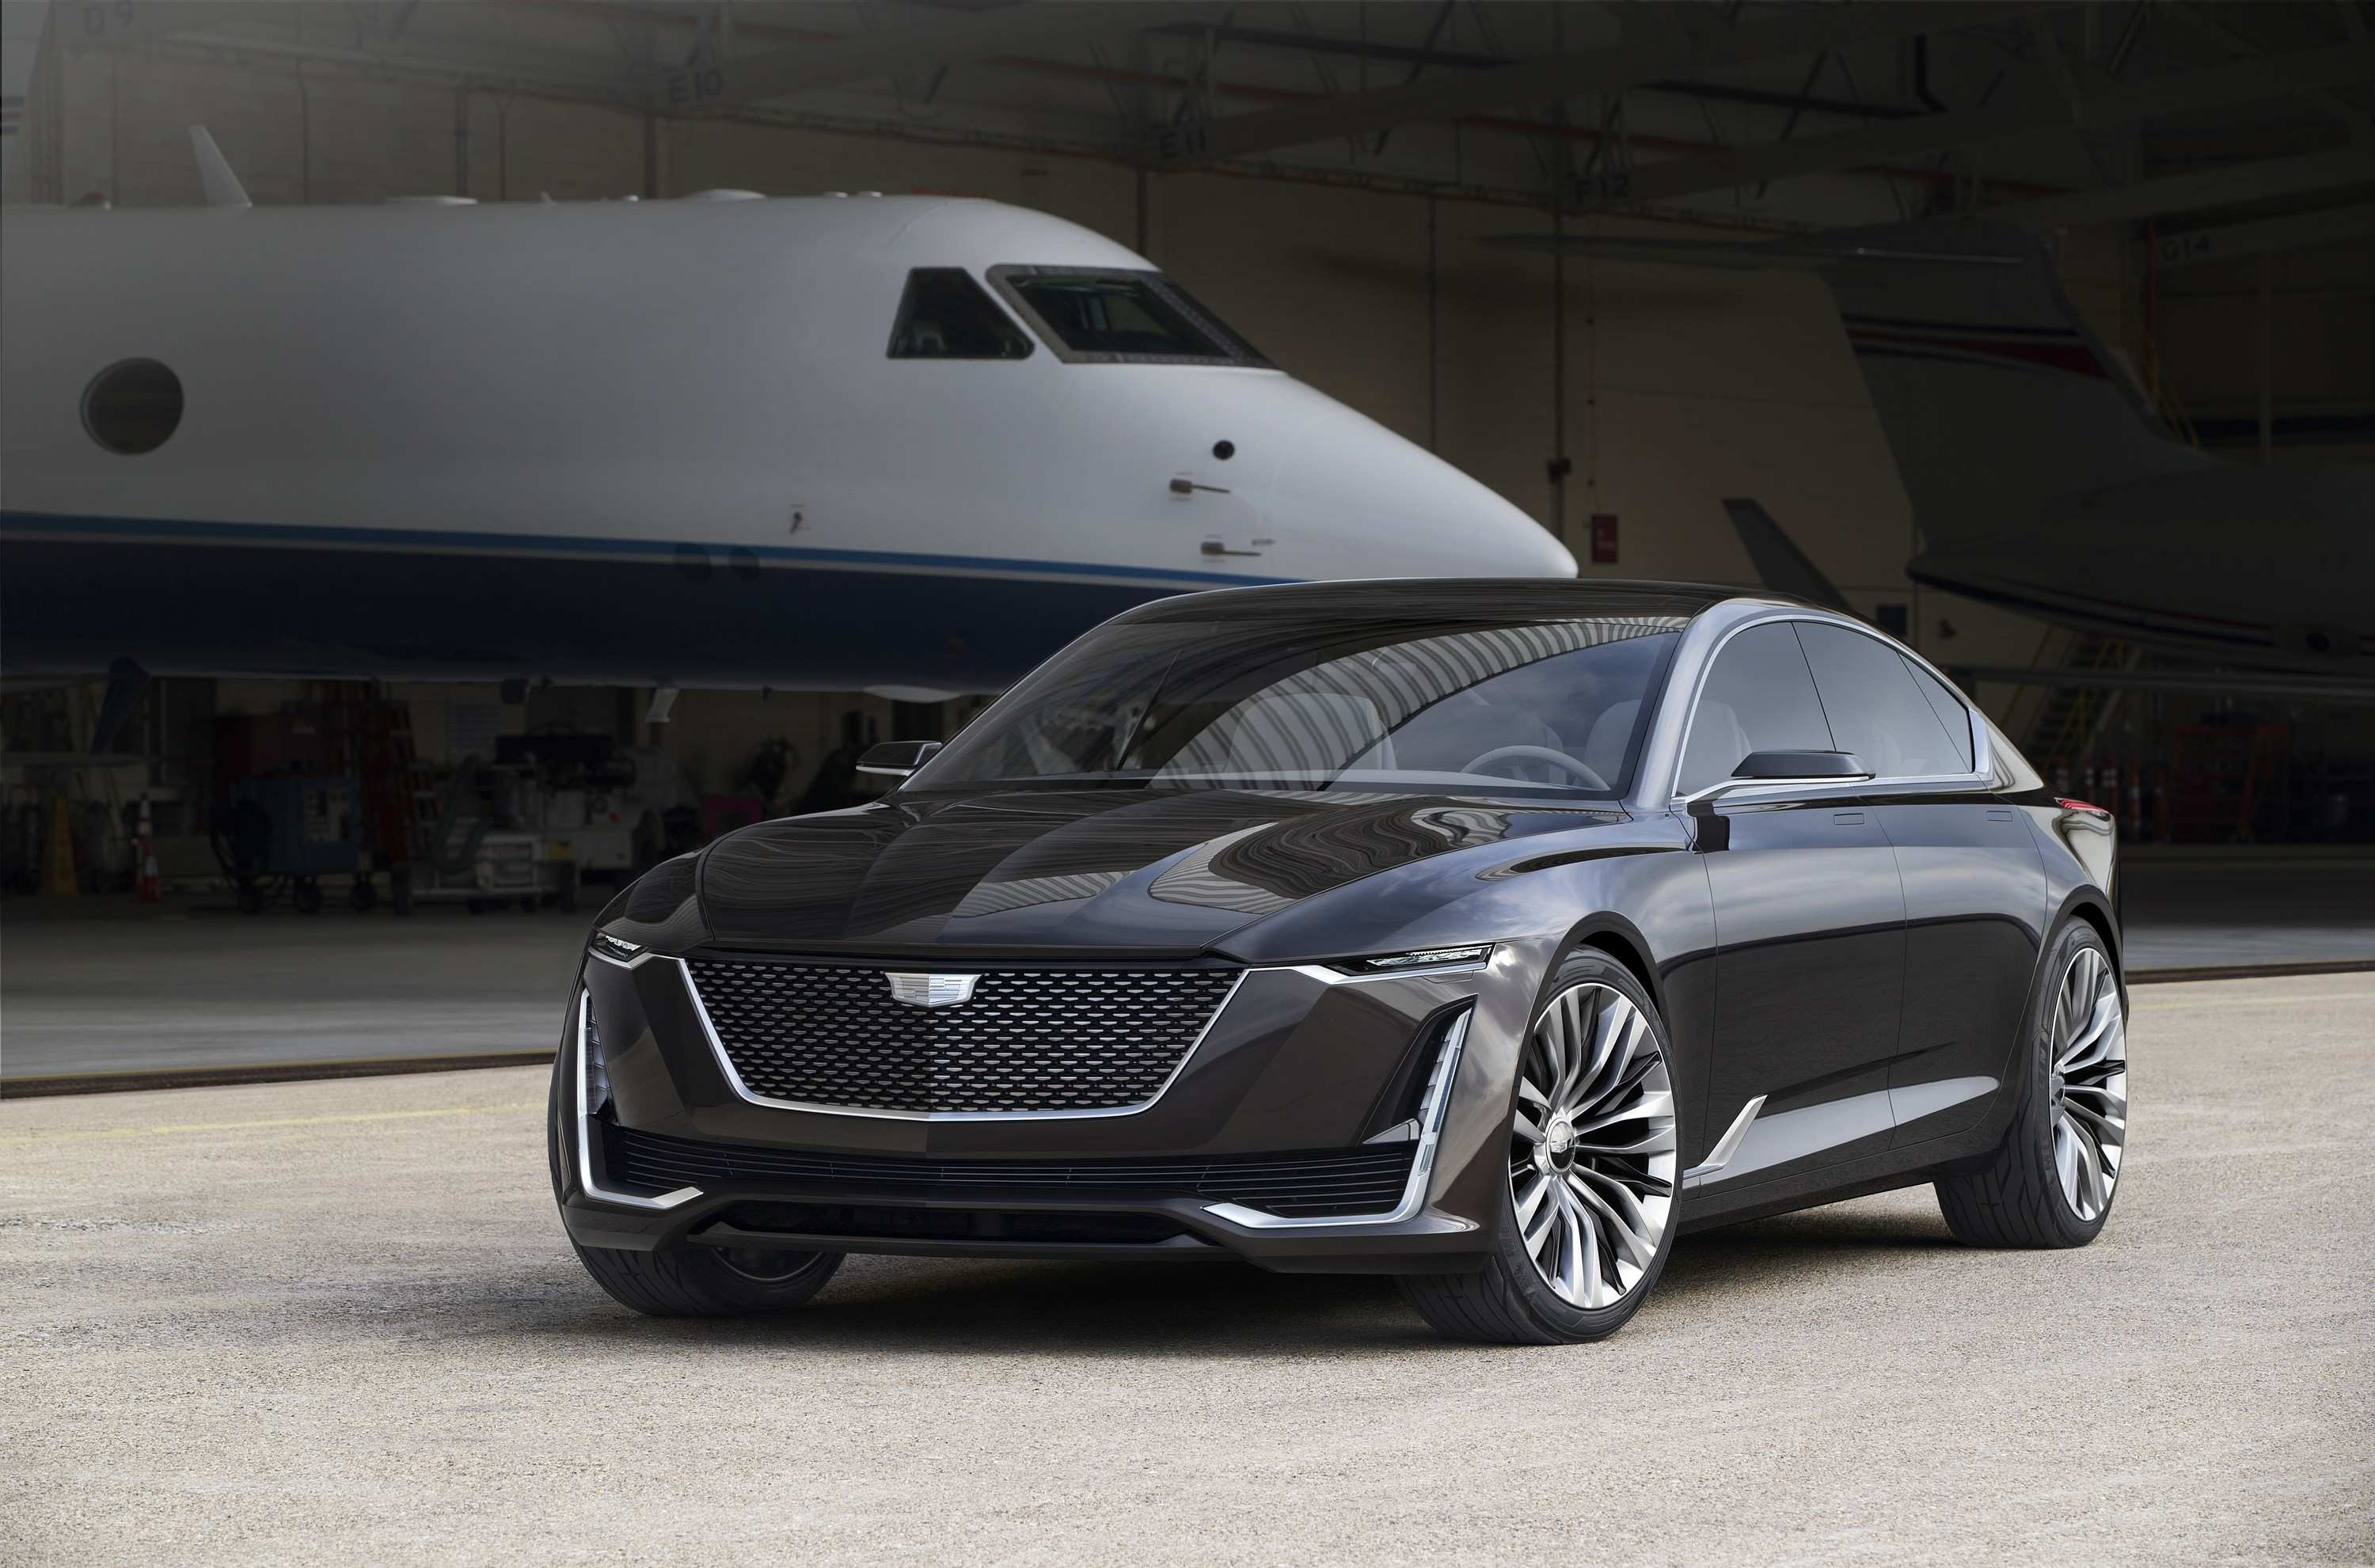 35 The 2020 Candillac Xts Price And Release Date